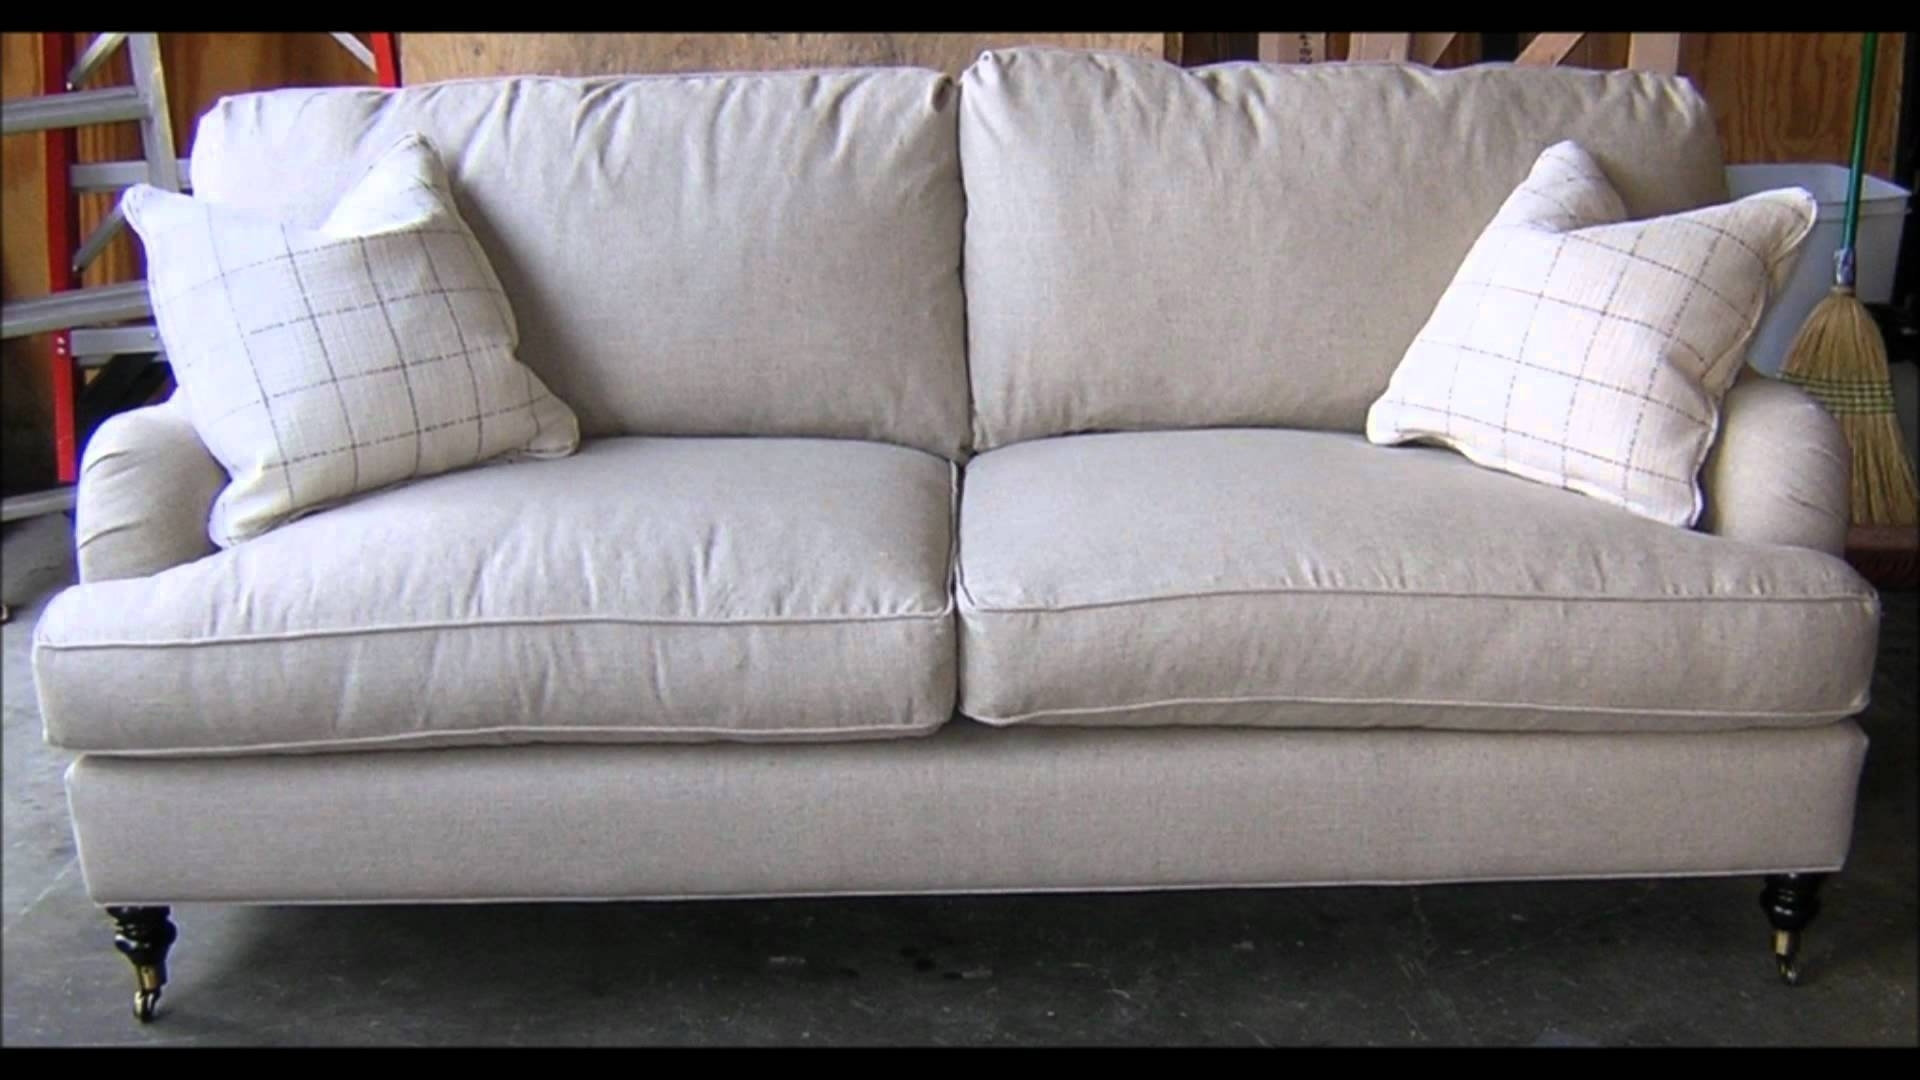 Widely Used Tuscaloosa Sectional Sofas Throughout Tuscaloosa Furniture Stores – Home Design Ideas And Pictures (View 20 of 20)